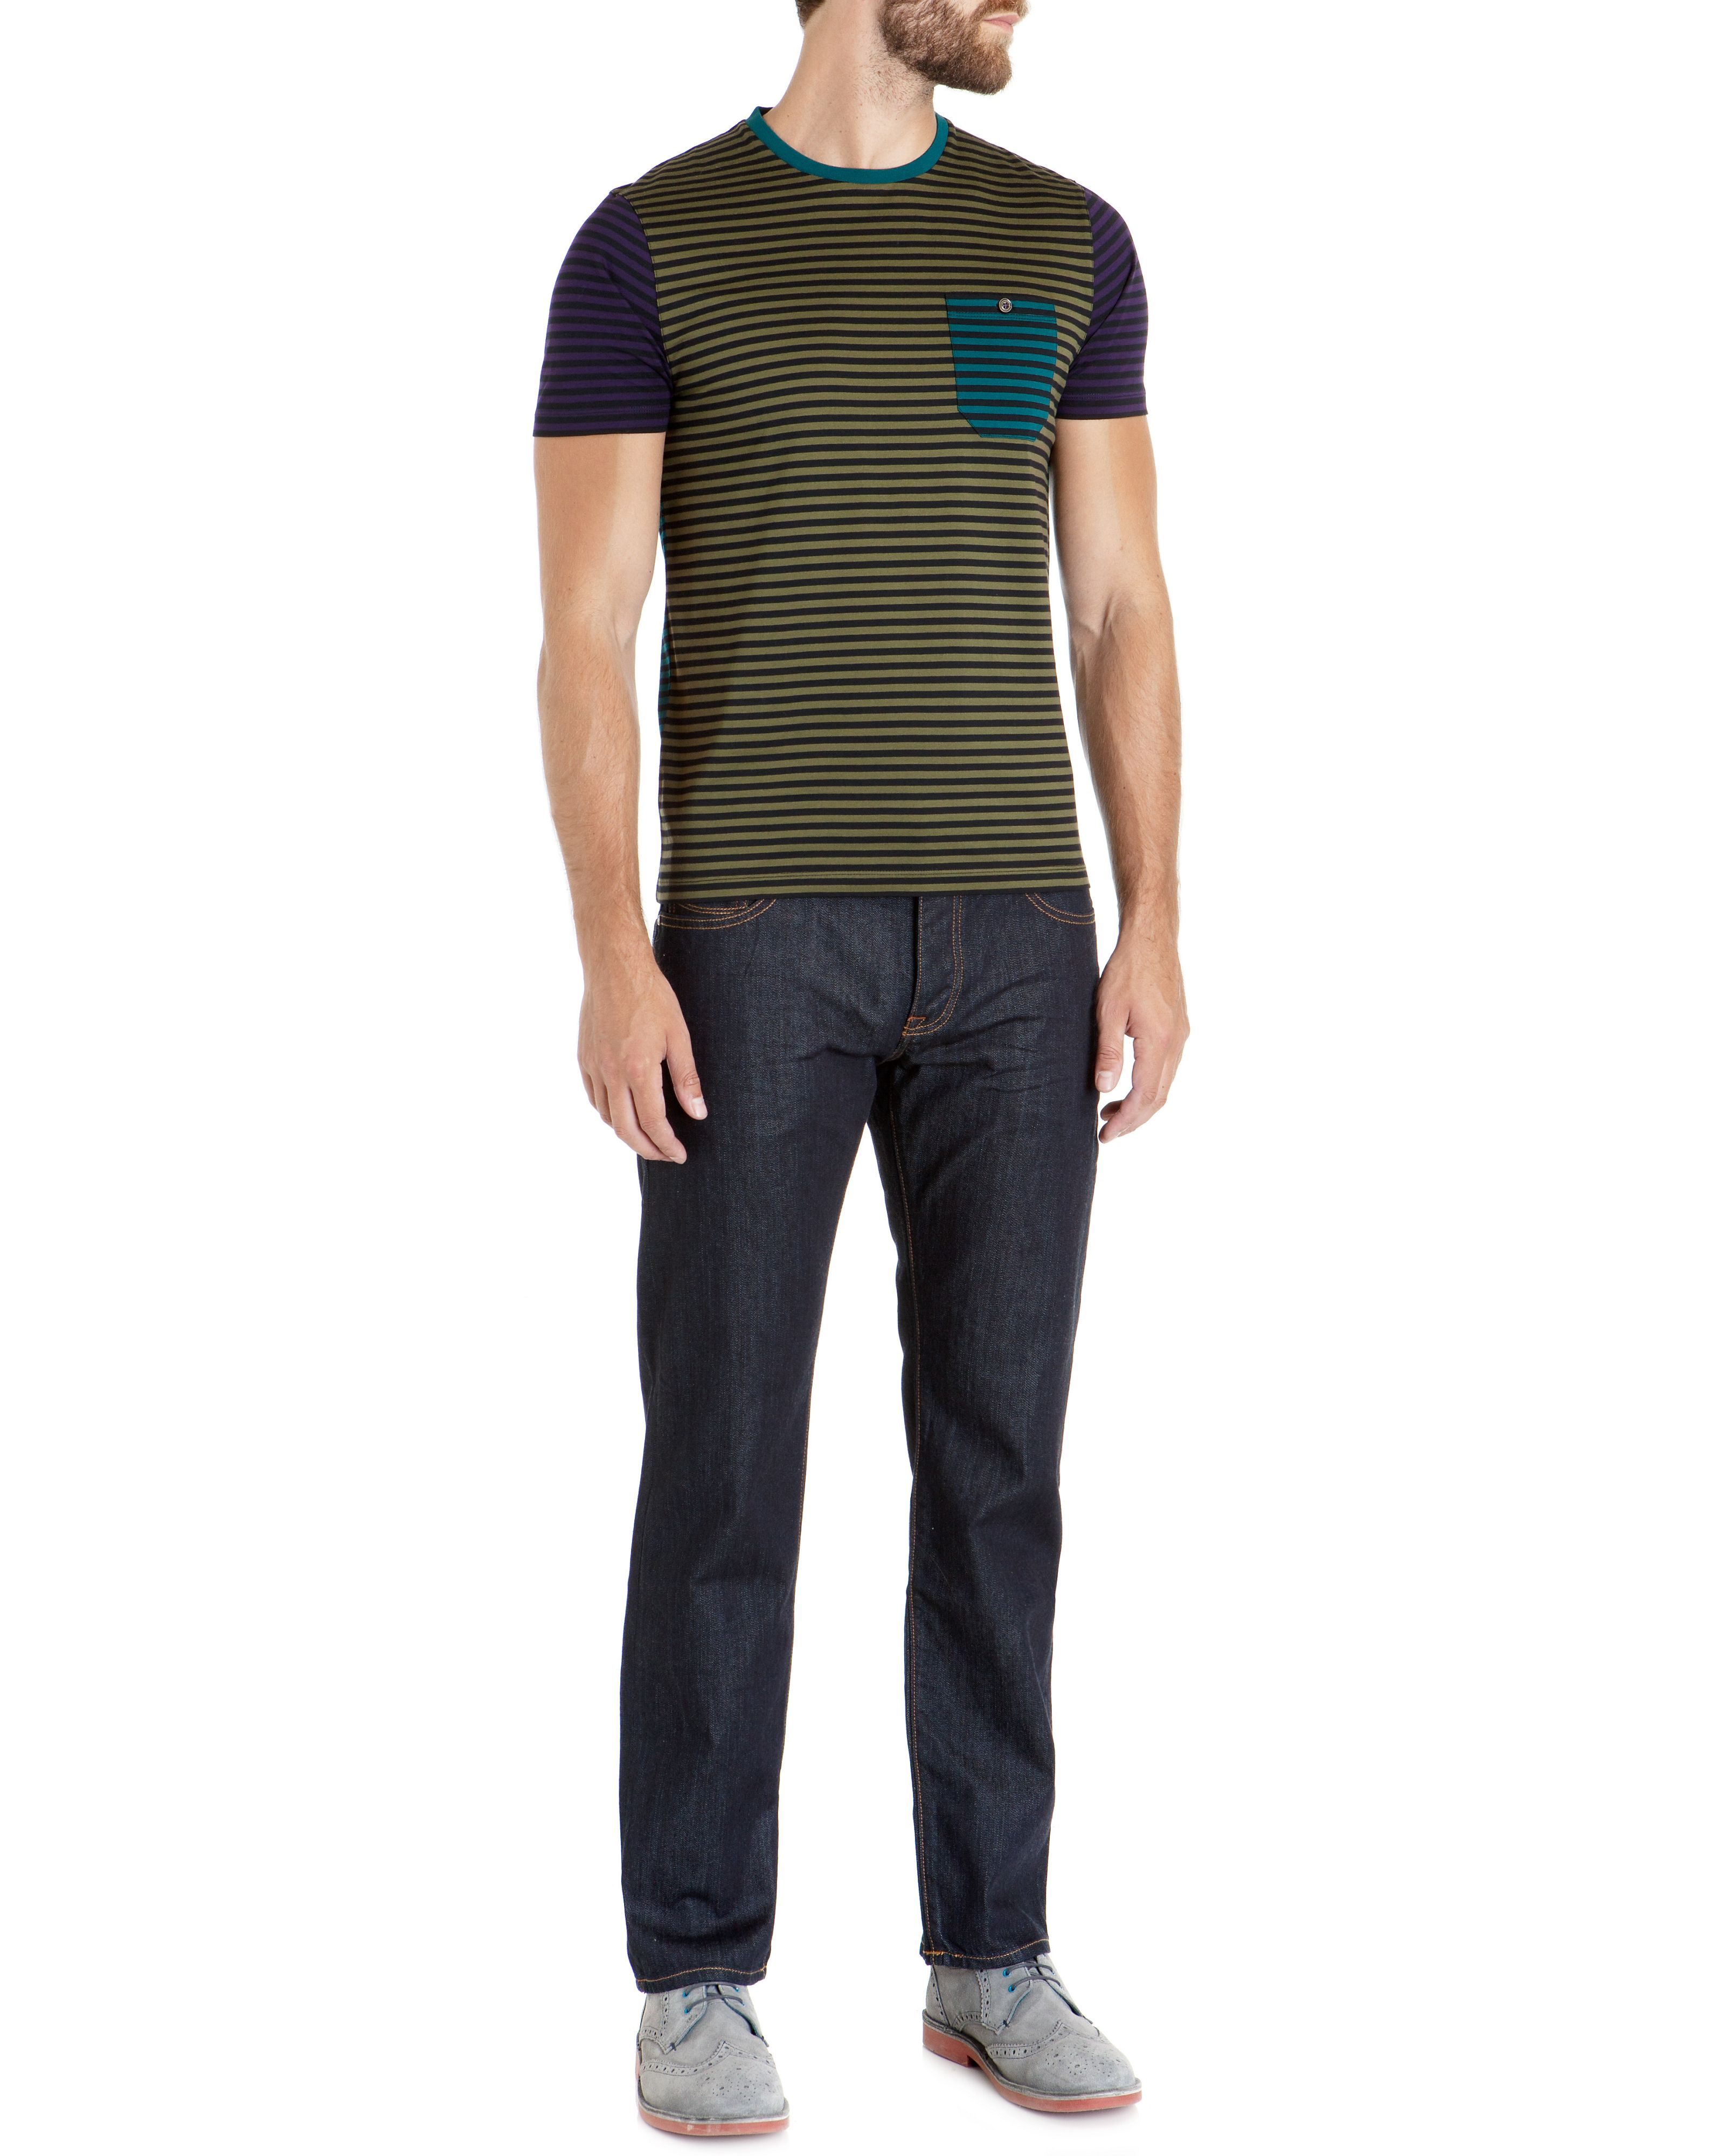 Karnak striped crew neck t-shirt